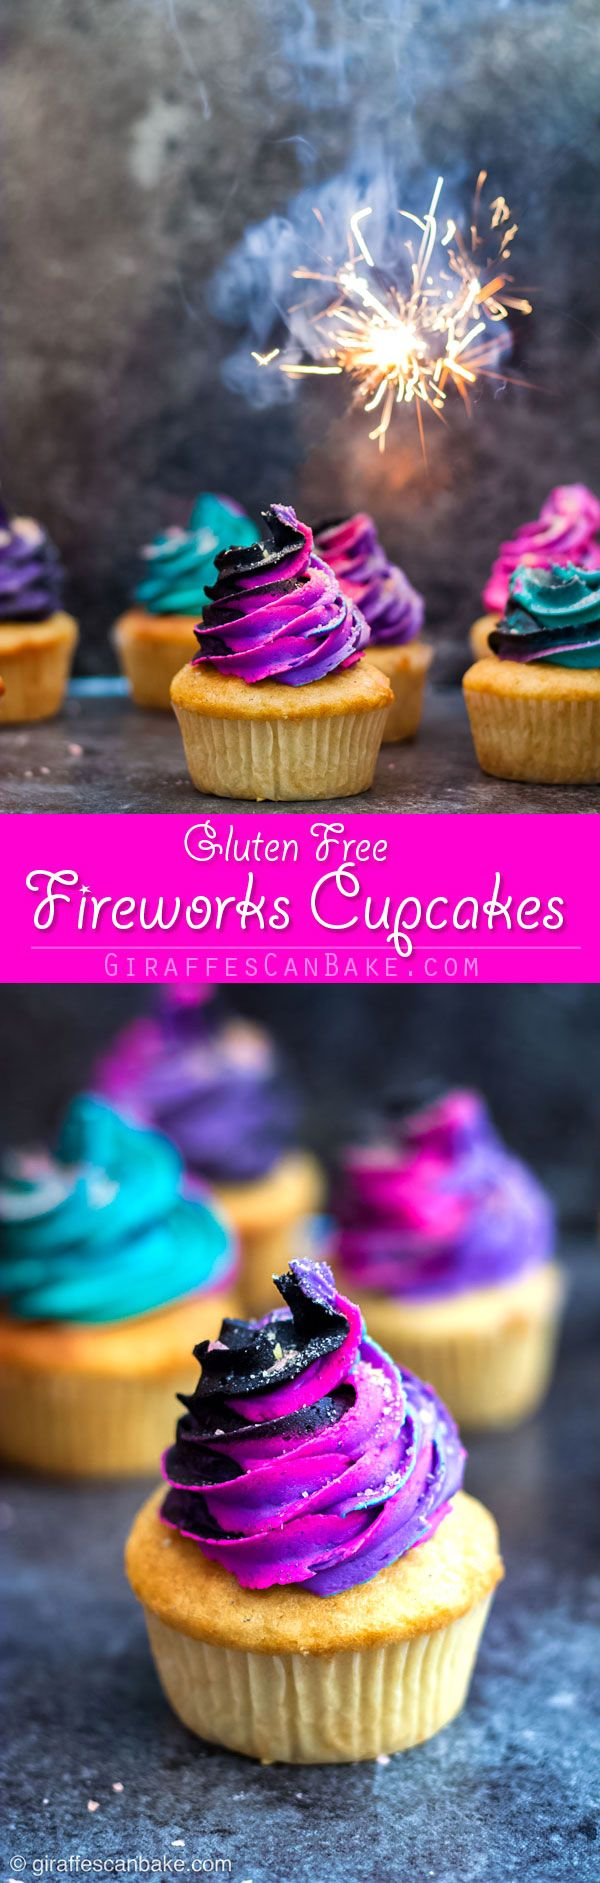 "These Fireworks Cupcakes are an easy and fun way to celebrate Bonfire Night! Gluten Free Vanilla Cupcakes are filled with popping candy, aka ""pop rocks"". And Neon buttercream is swirled with black buttercream to create an awesome fireworks in the night sky look! Sprinkle with more popping candy, and you'll be ooh-ing and ahh-ing through every bite #cupcakes #glutenfree #glutenfreebaking #fireworks #bonfirenight #guyfawkes #newyearseve via @giraffescanbake"